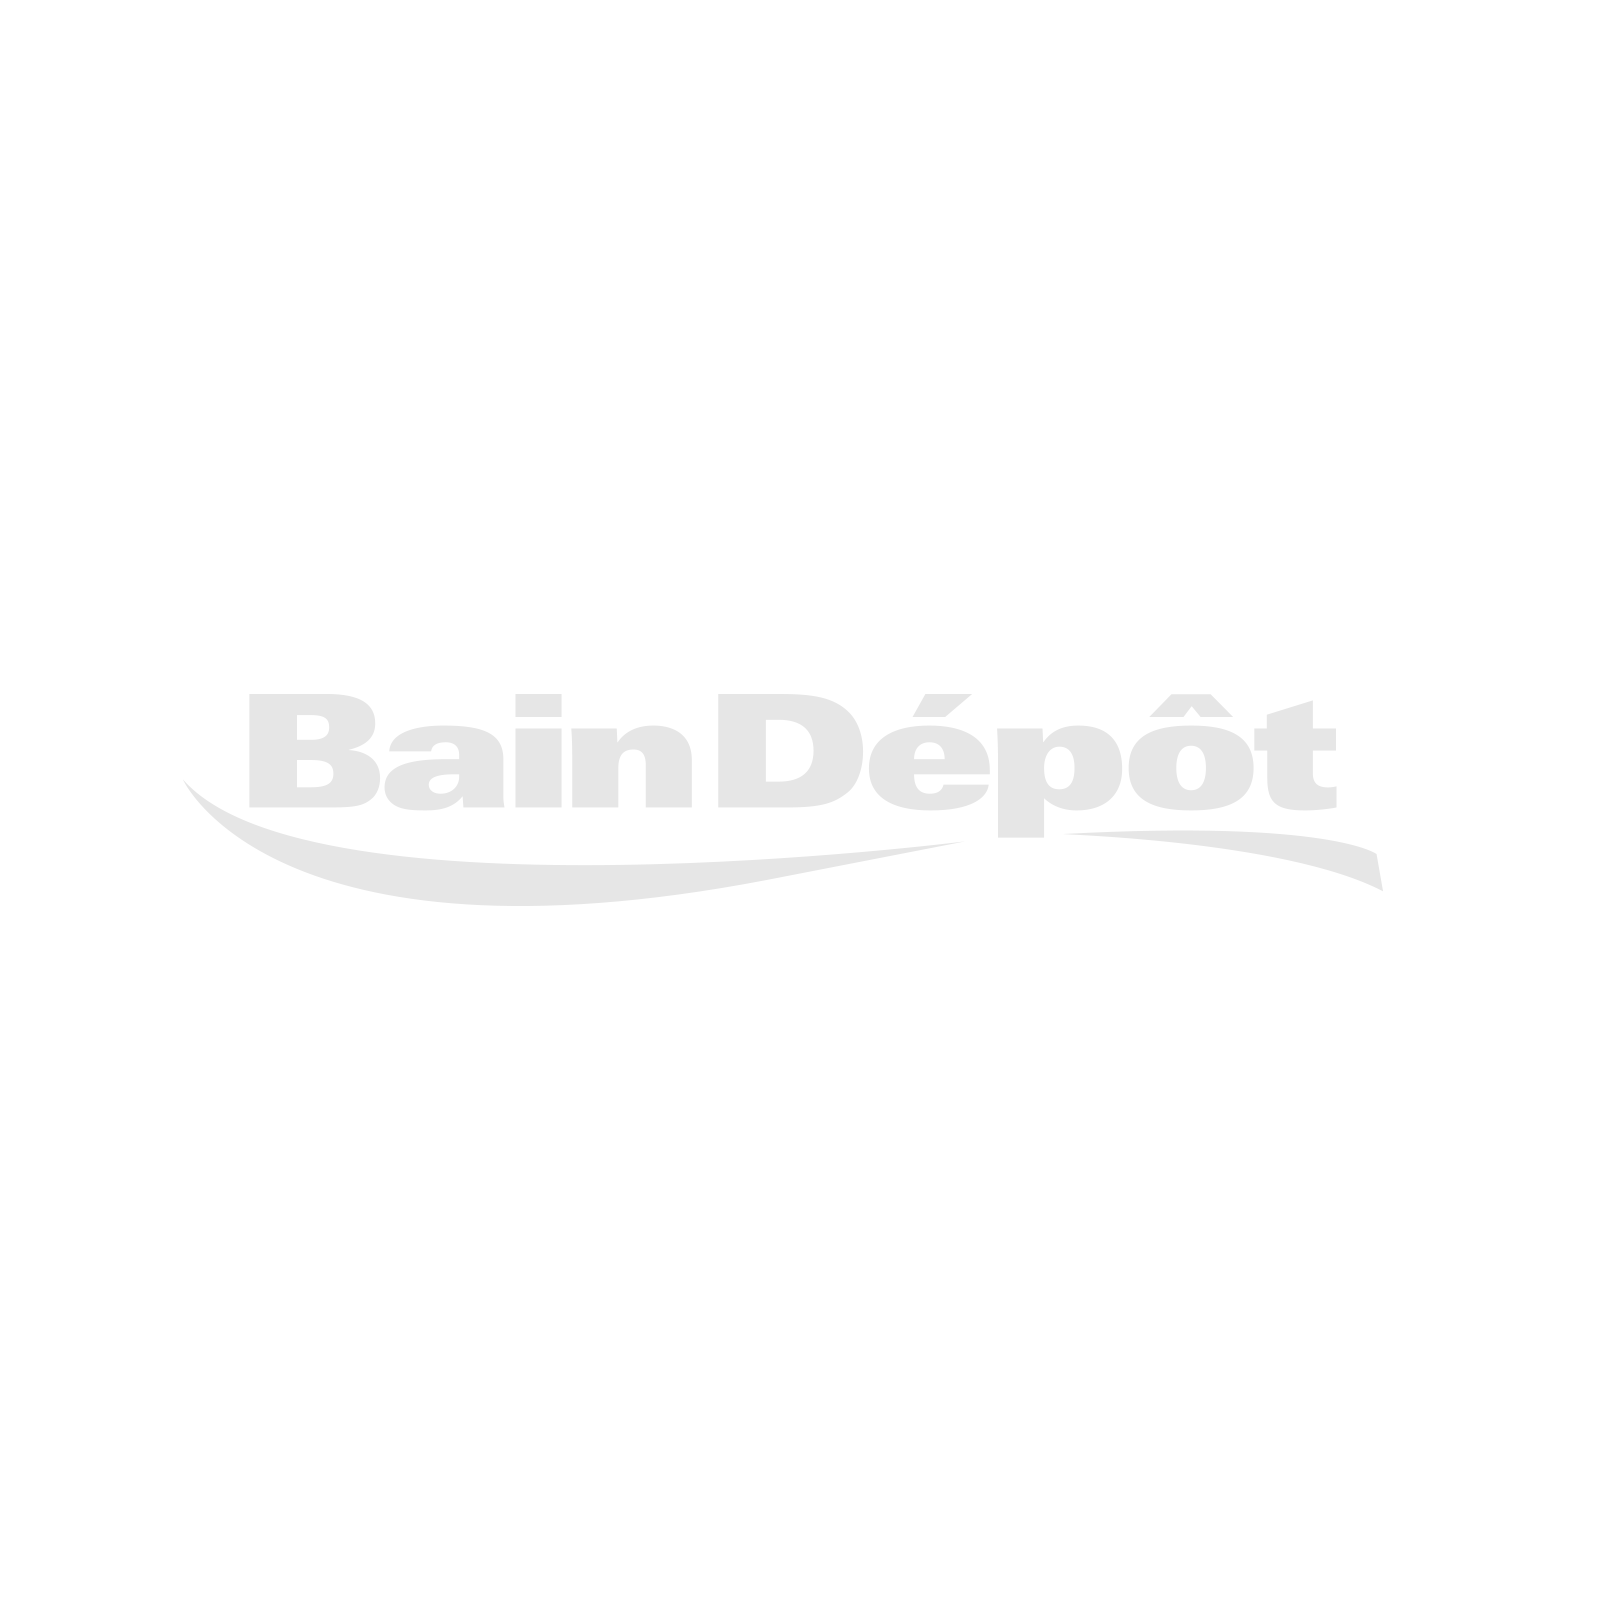 SCALESWEEPER lime scale eliminator for appliances and plumbing